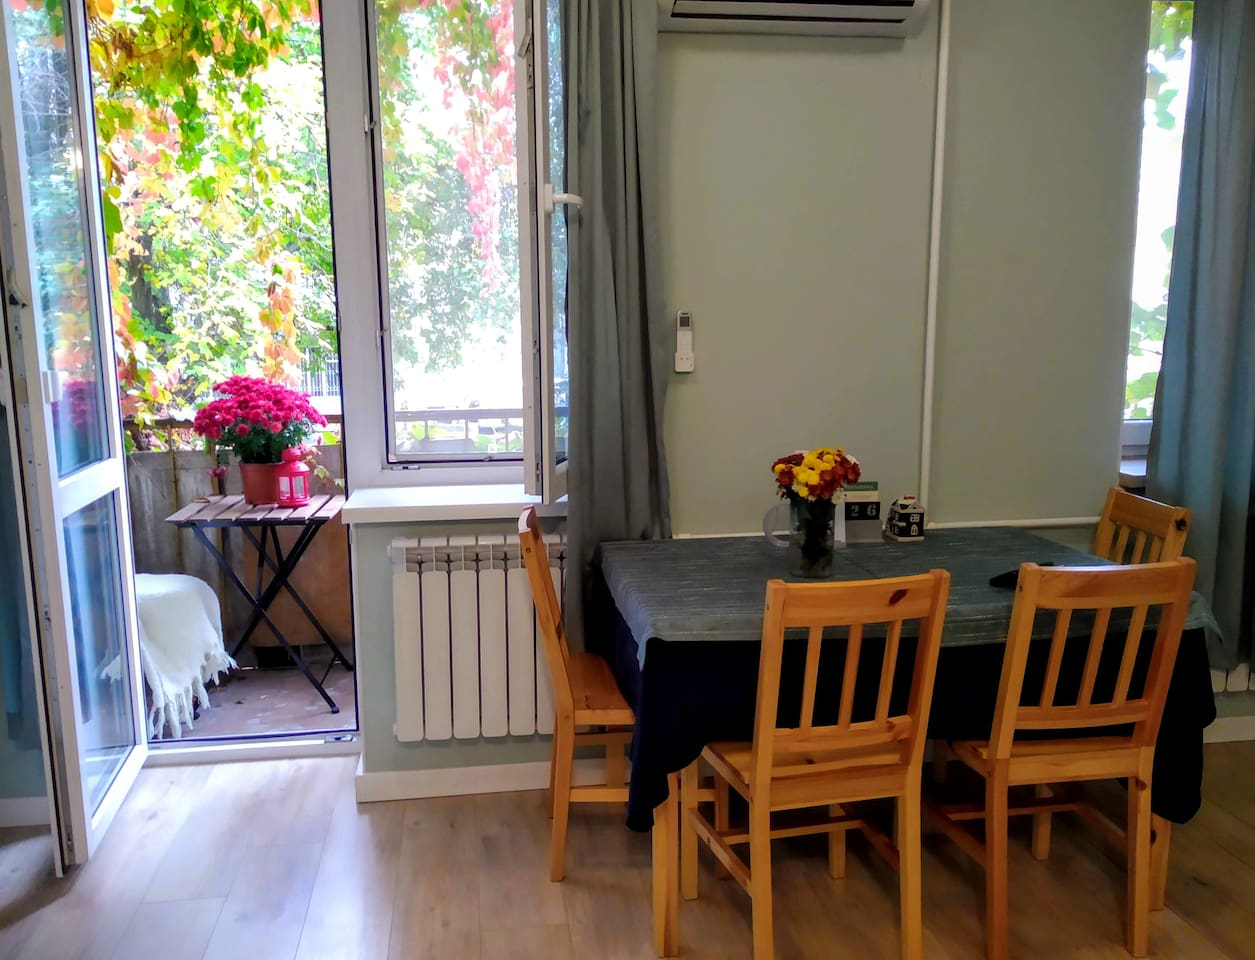 Photo of the living area and our cosy nook on the balcony